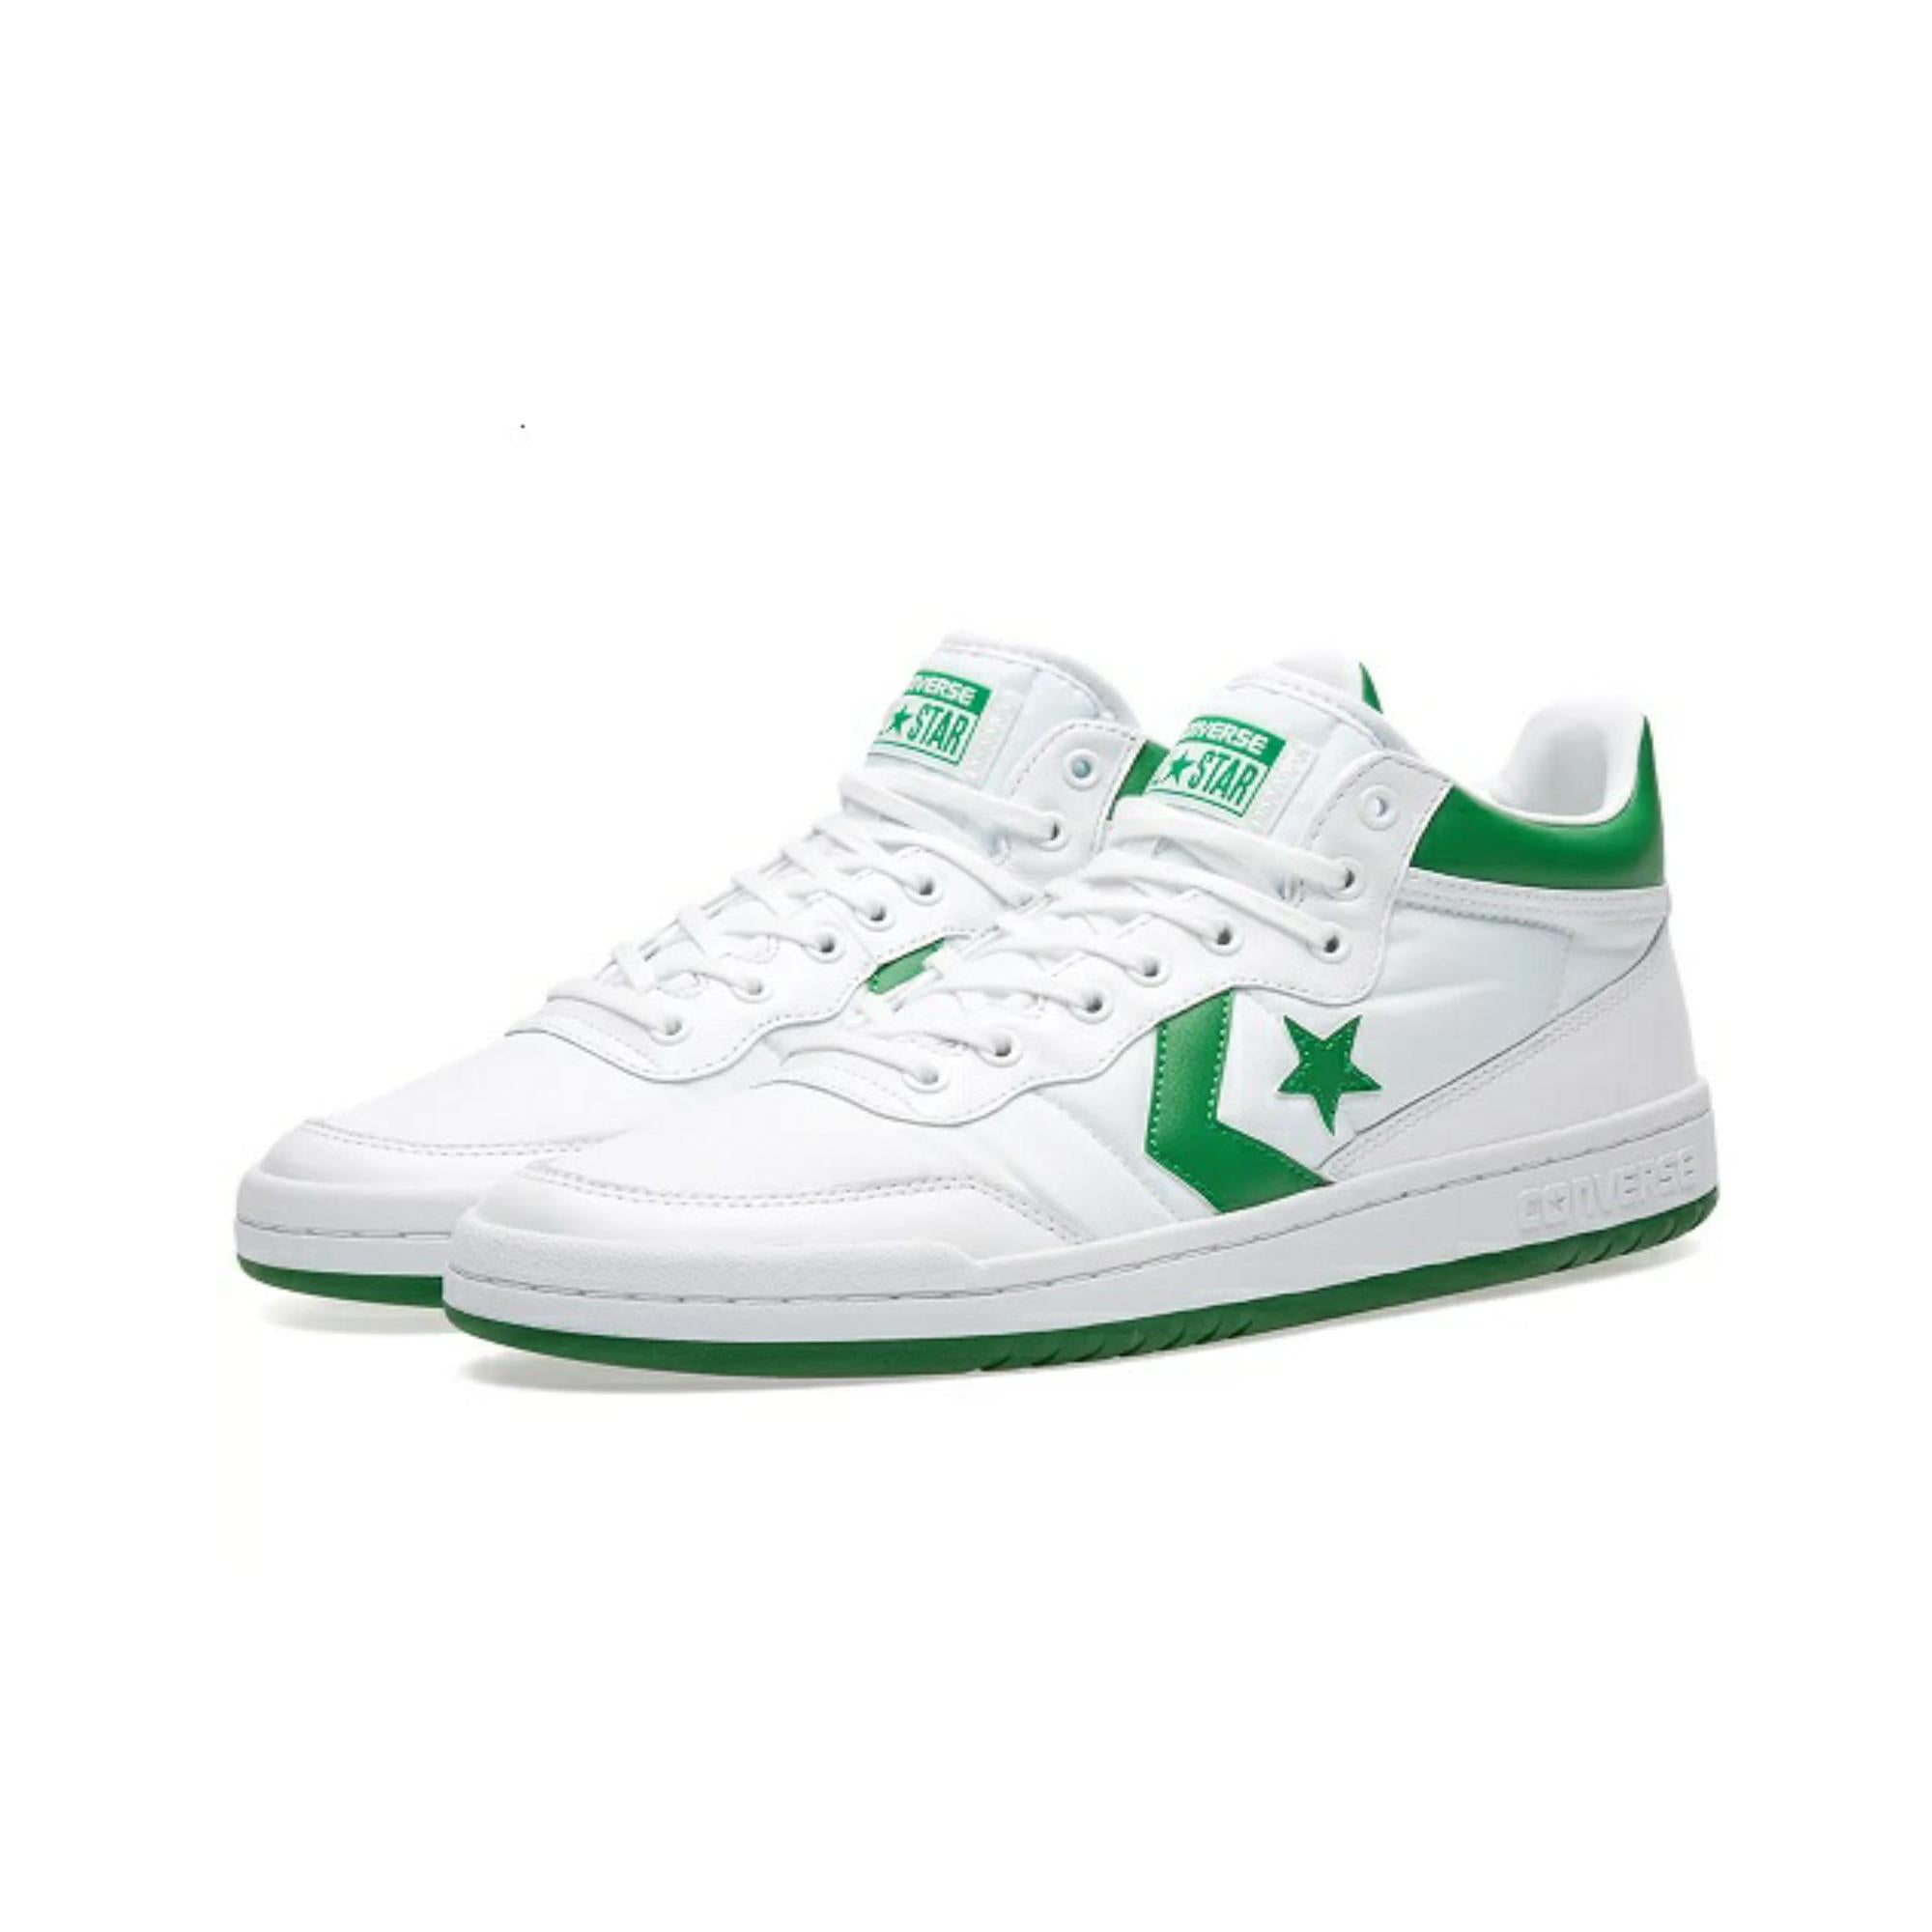 FASTBREAK MID WHITE/GREEN/WHITE 156973C